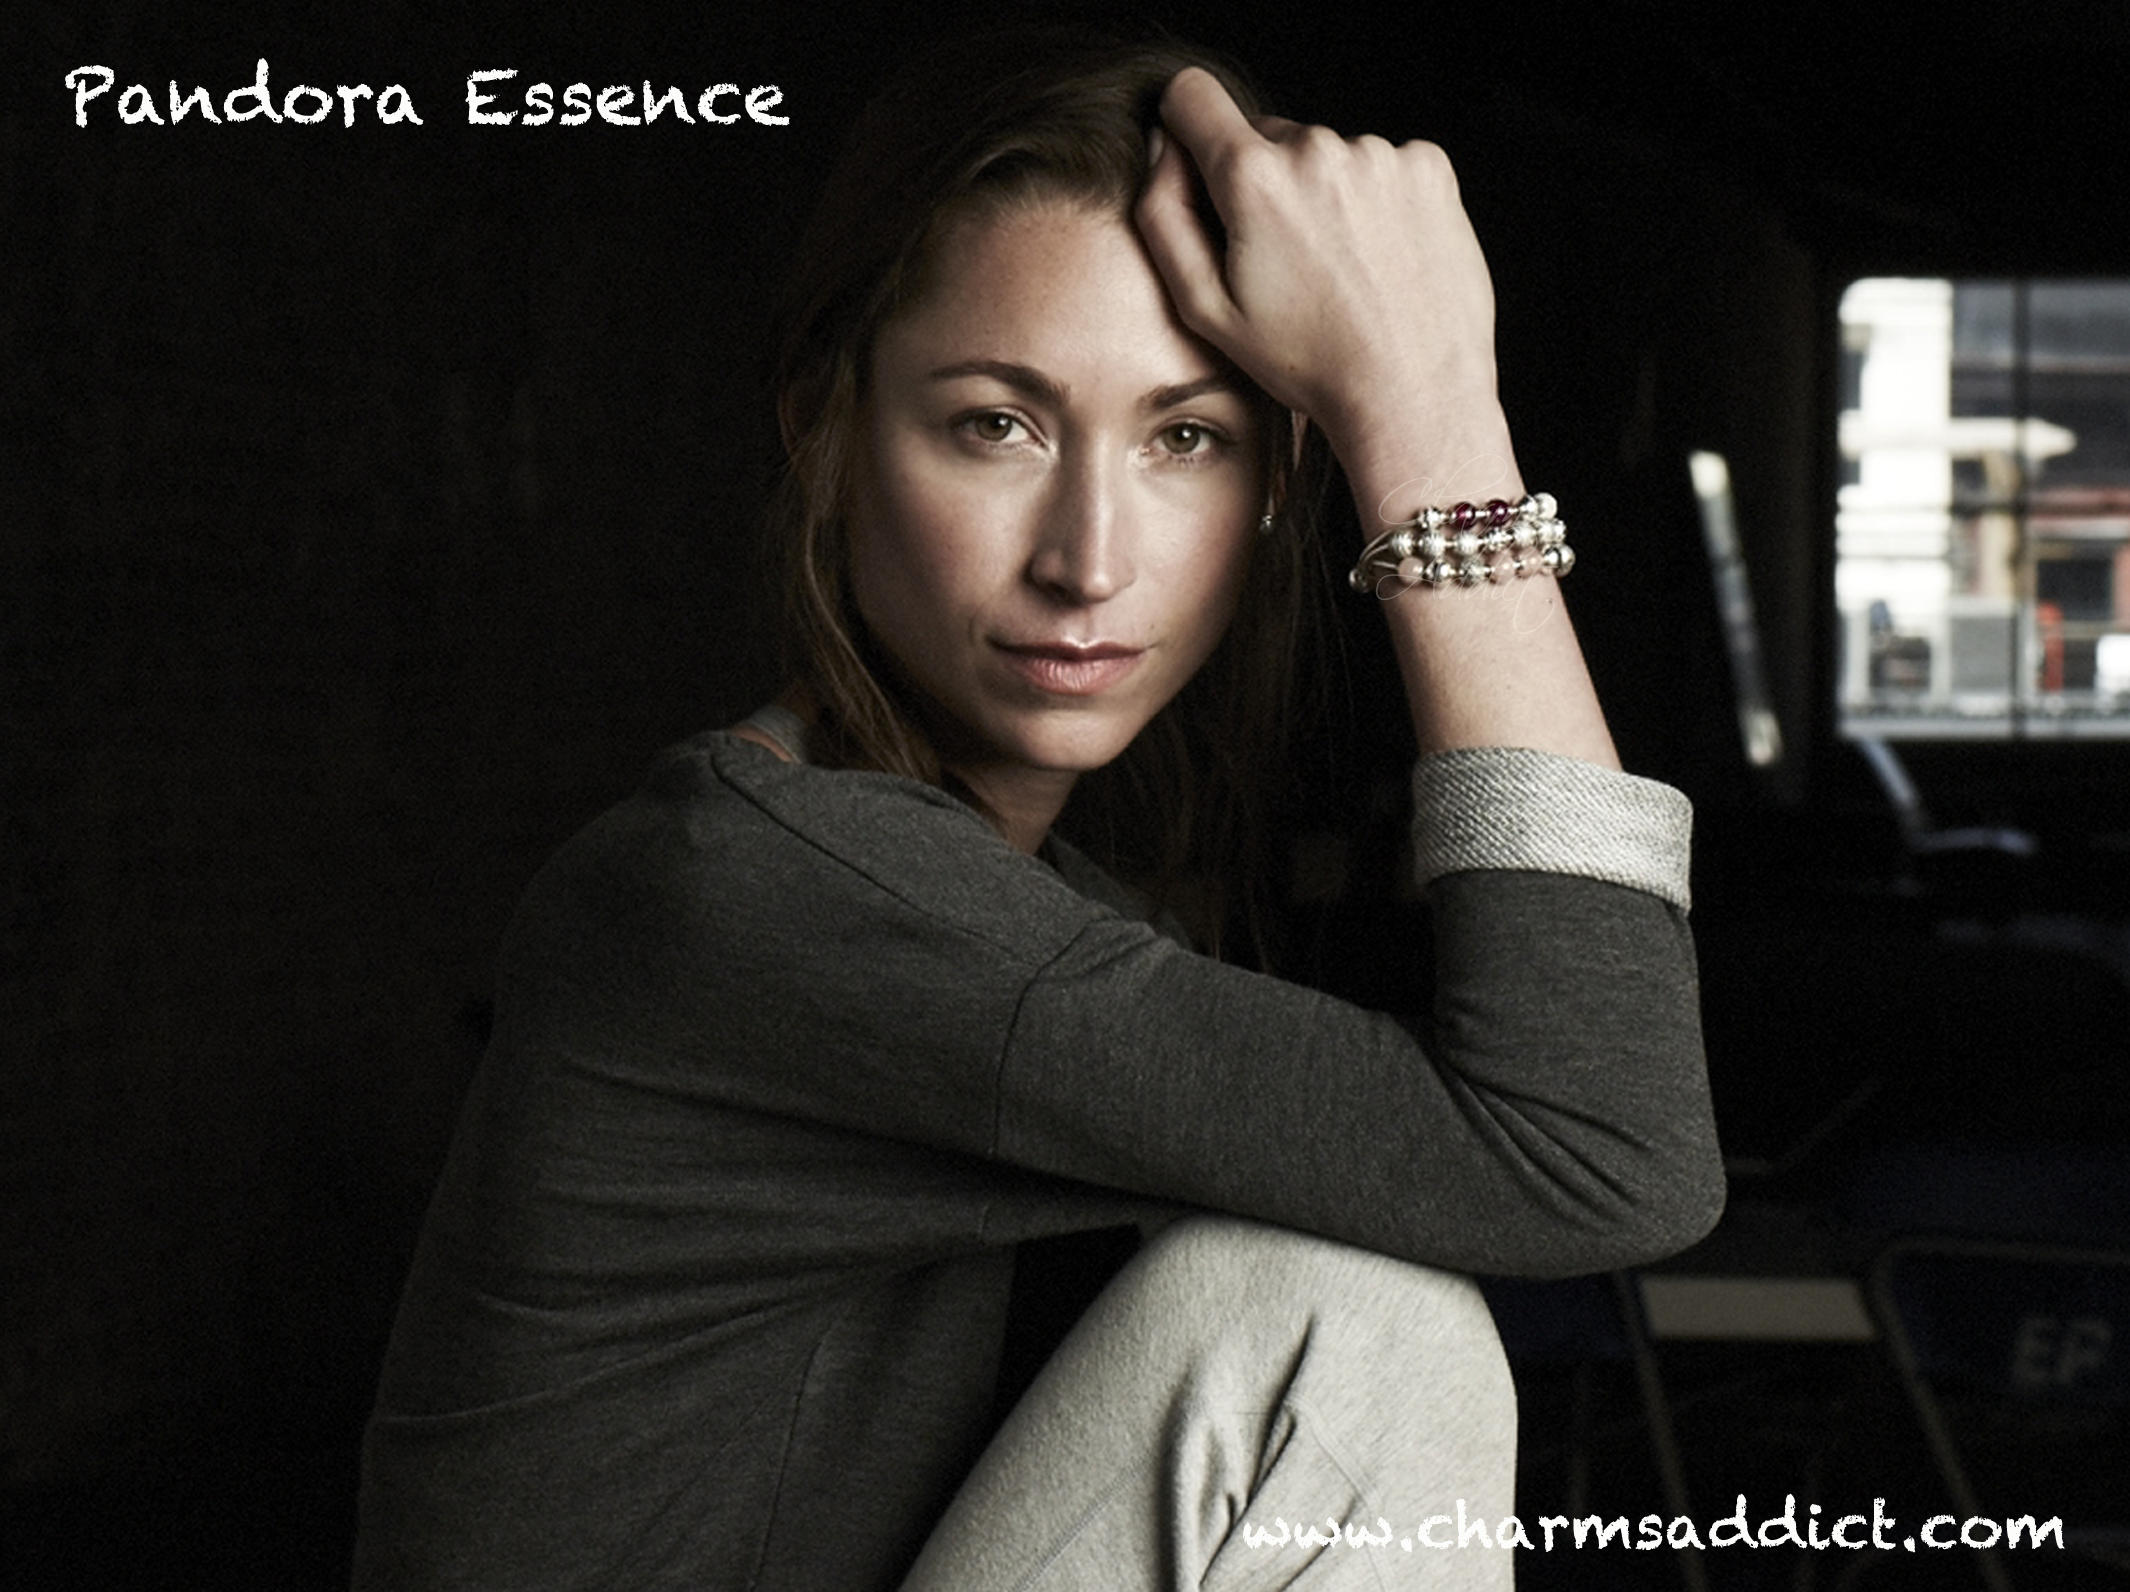 An Exclusive Introduction of Pandora Essence